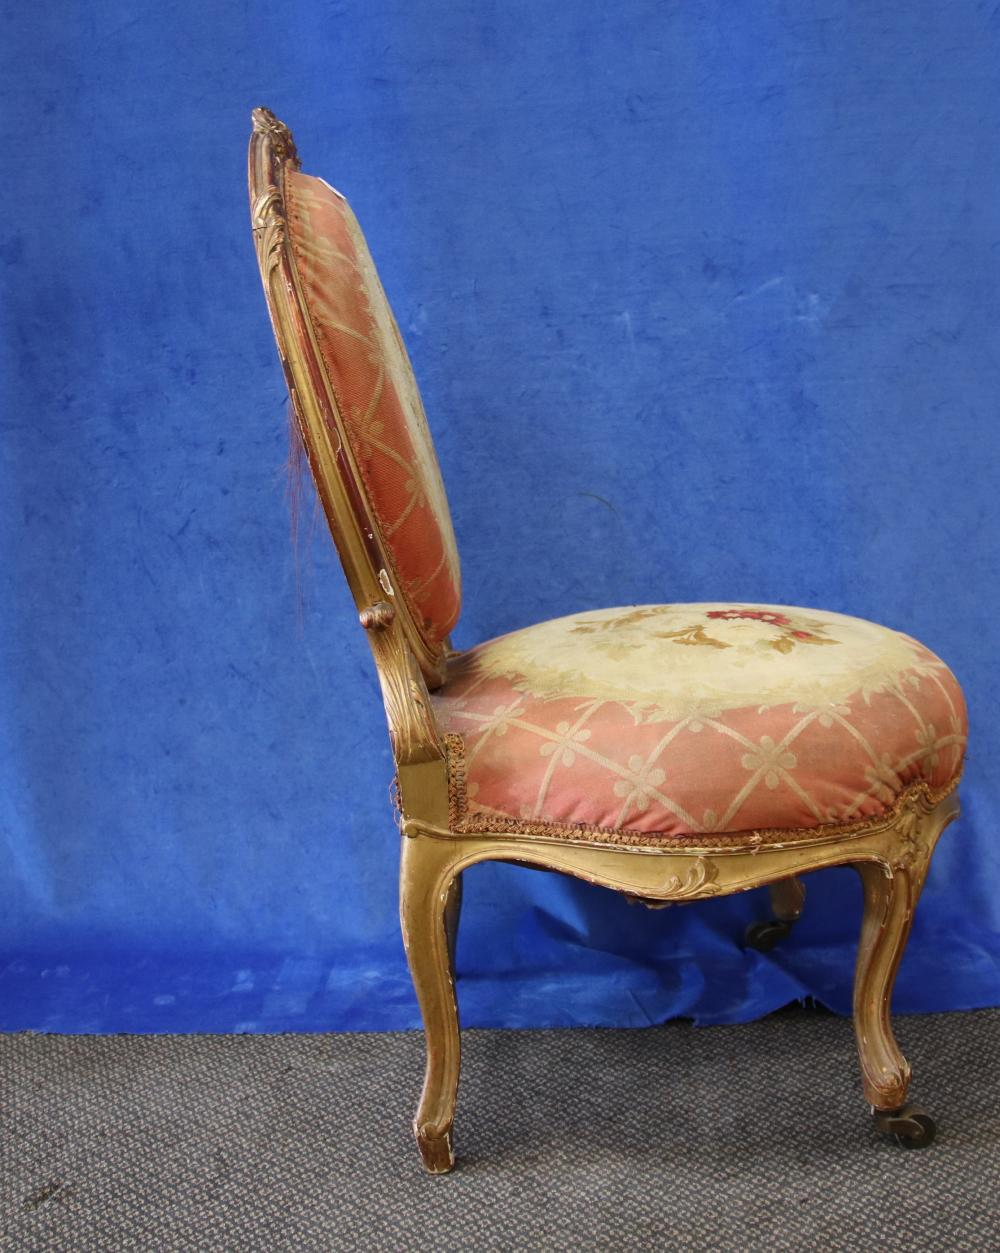 LOUIS XV STYLE GOLD FRENCH BEDROOM/SLIPPER CHAIR, TAPESTRY UPHOLSTERY, CIRCA 1910'S